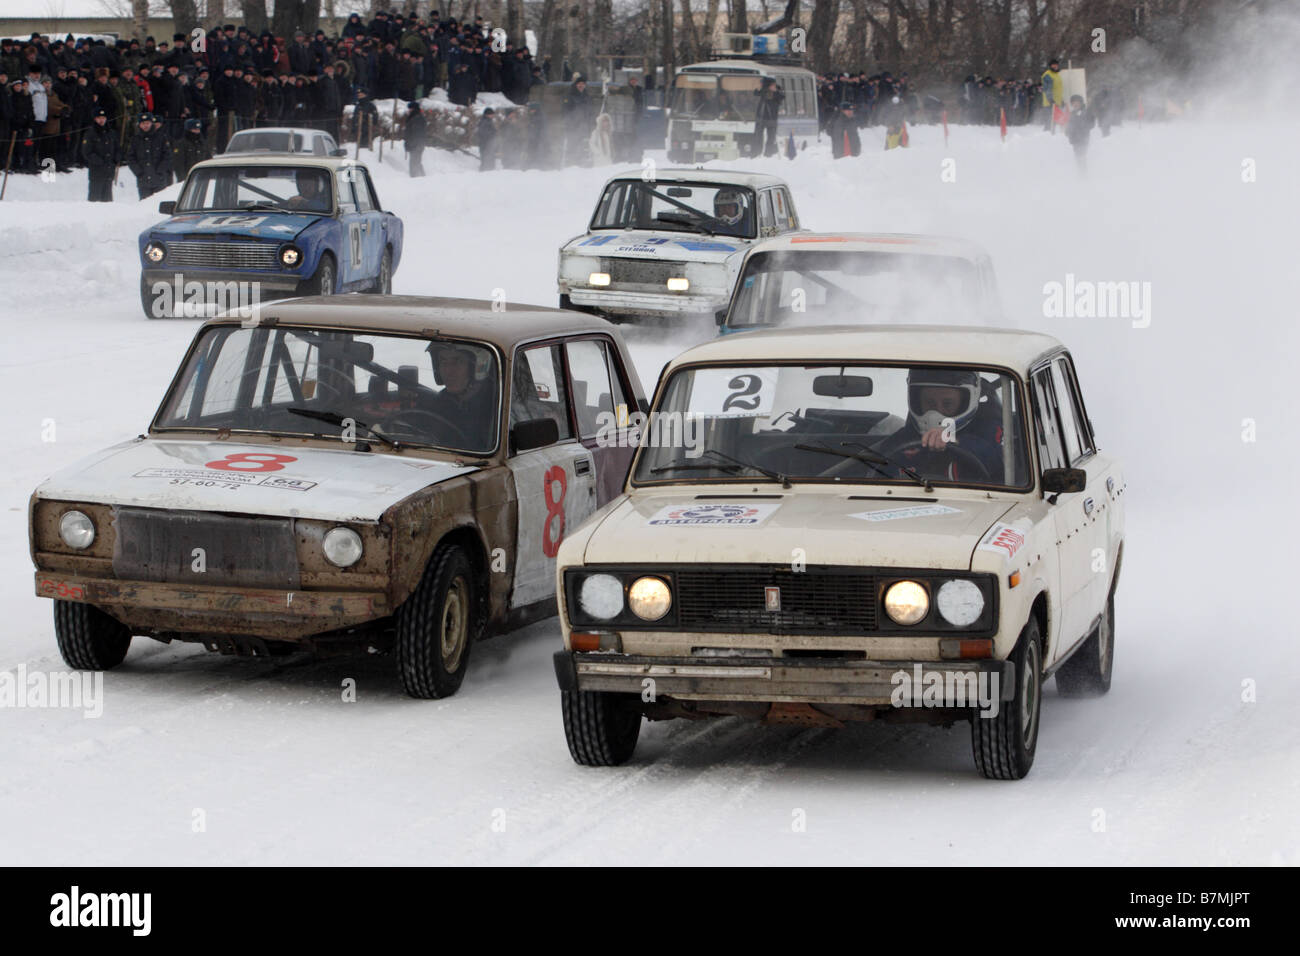 lada 2106 at the winter rally in tambov russia stock photo royalty free image 21966752 alamy. Black Bedroom Furniture Sets. Home Design Ideas